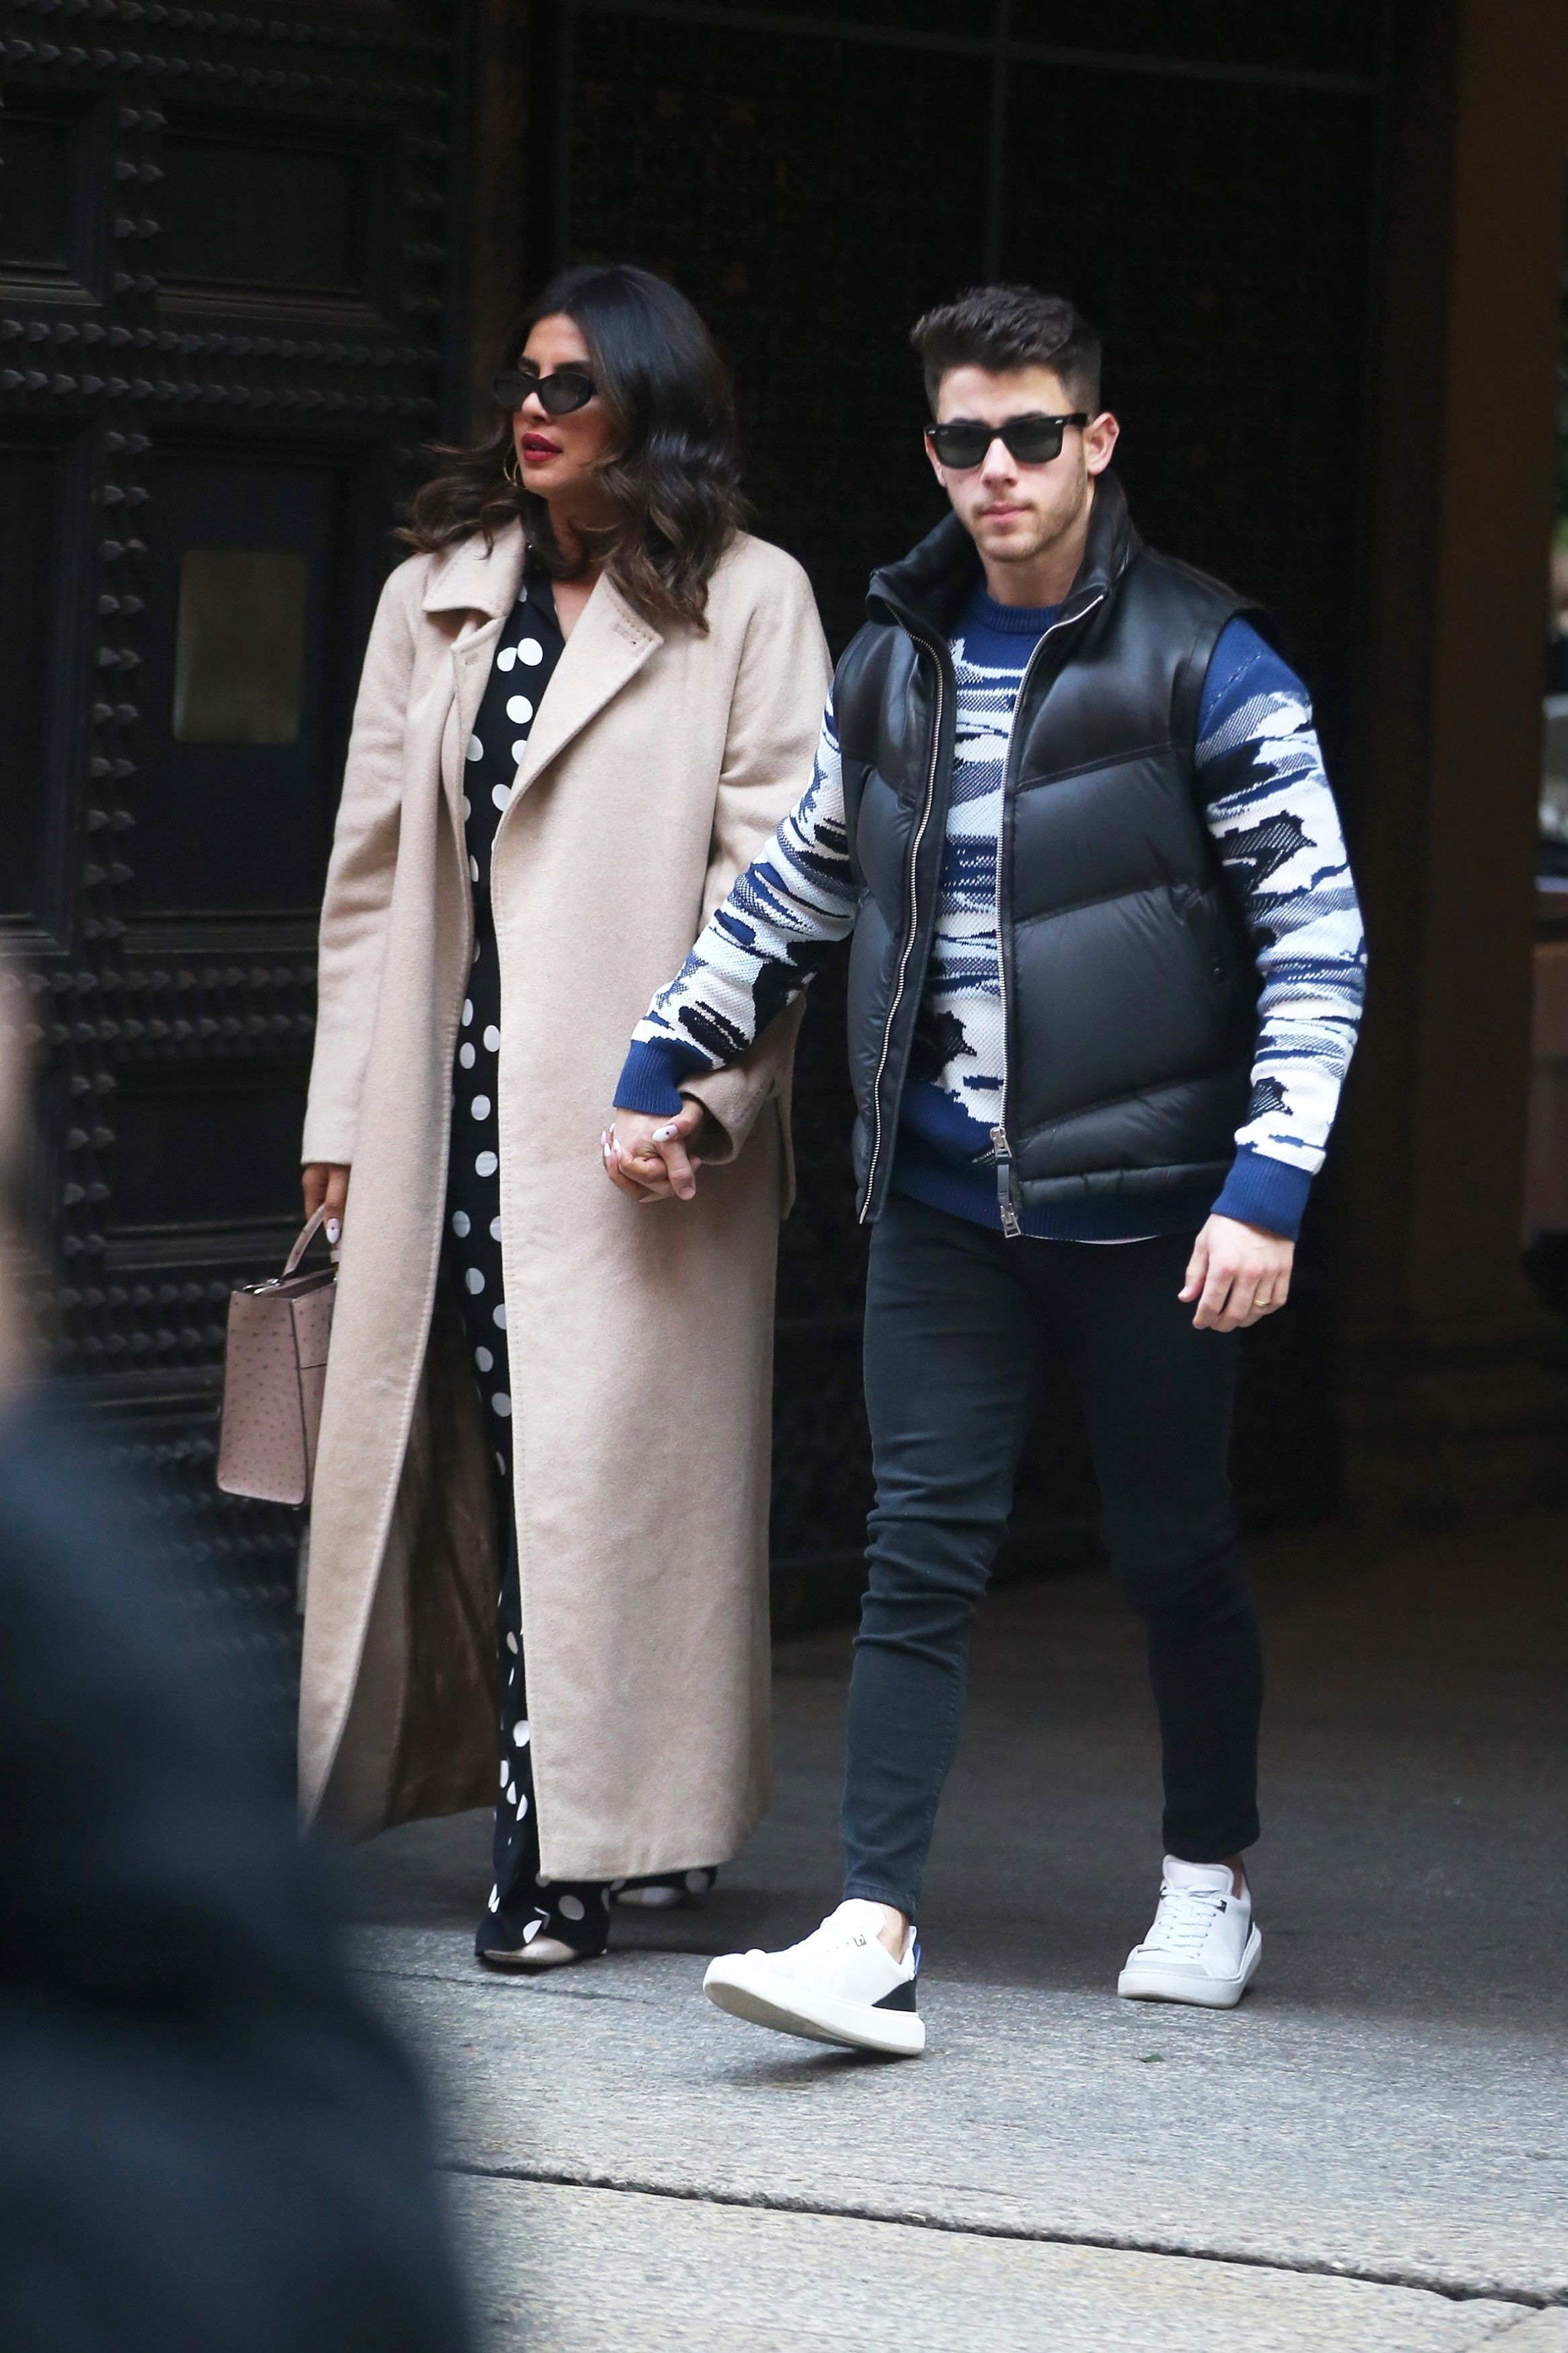 Of Course Priyanka Chopra and Nick Jonas Matched in Black for Their Valentine's Day Date